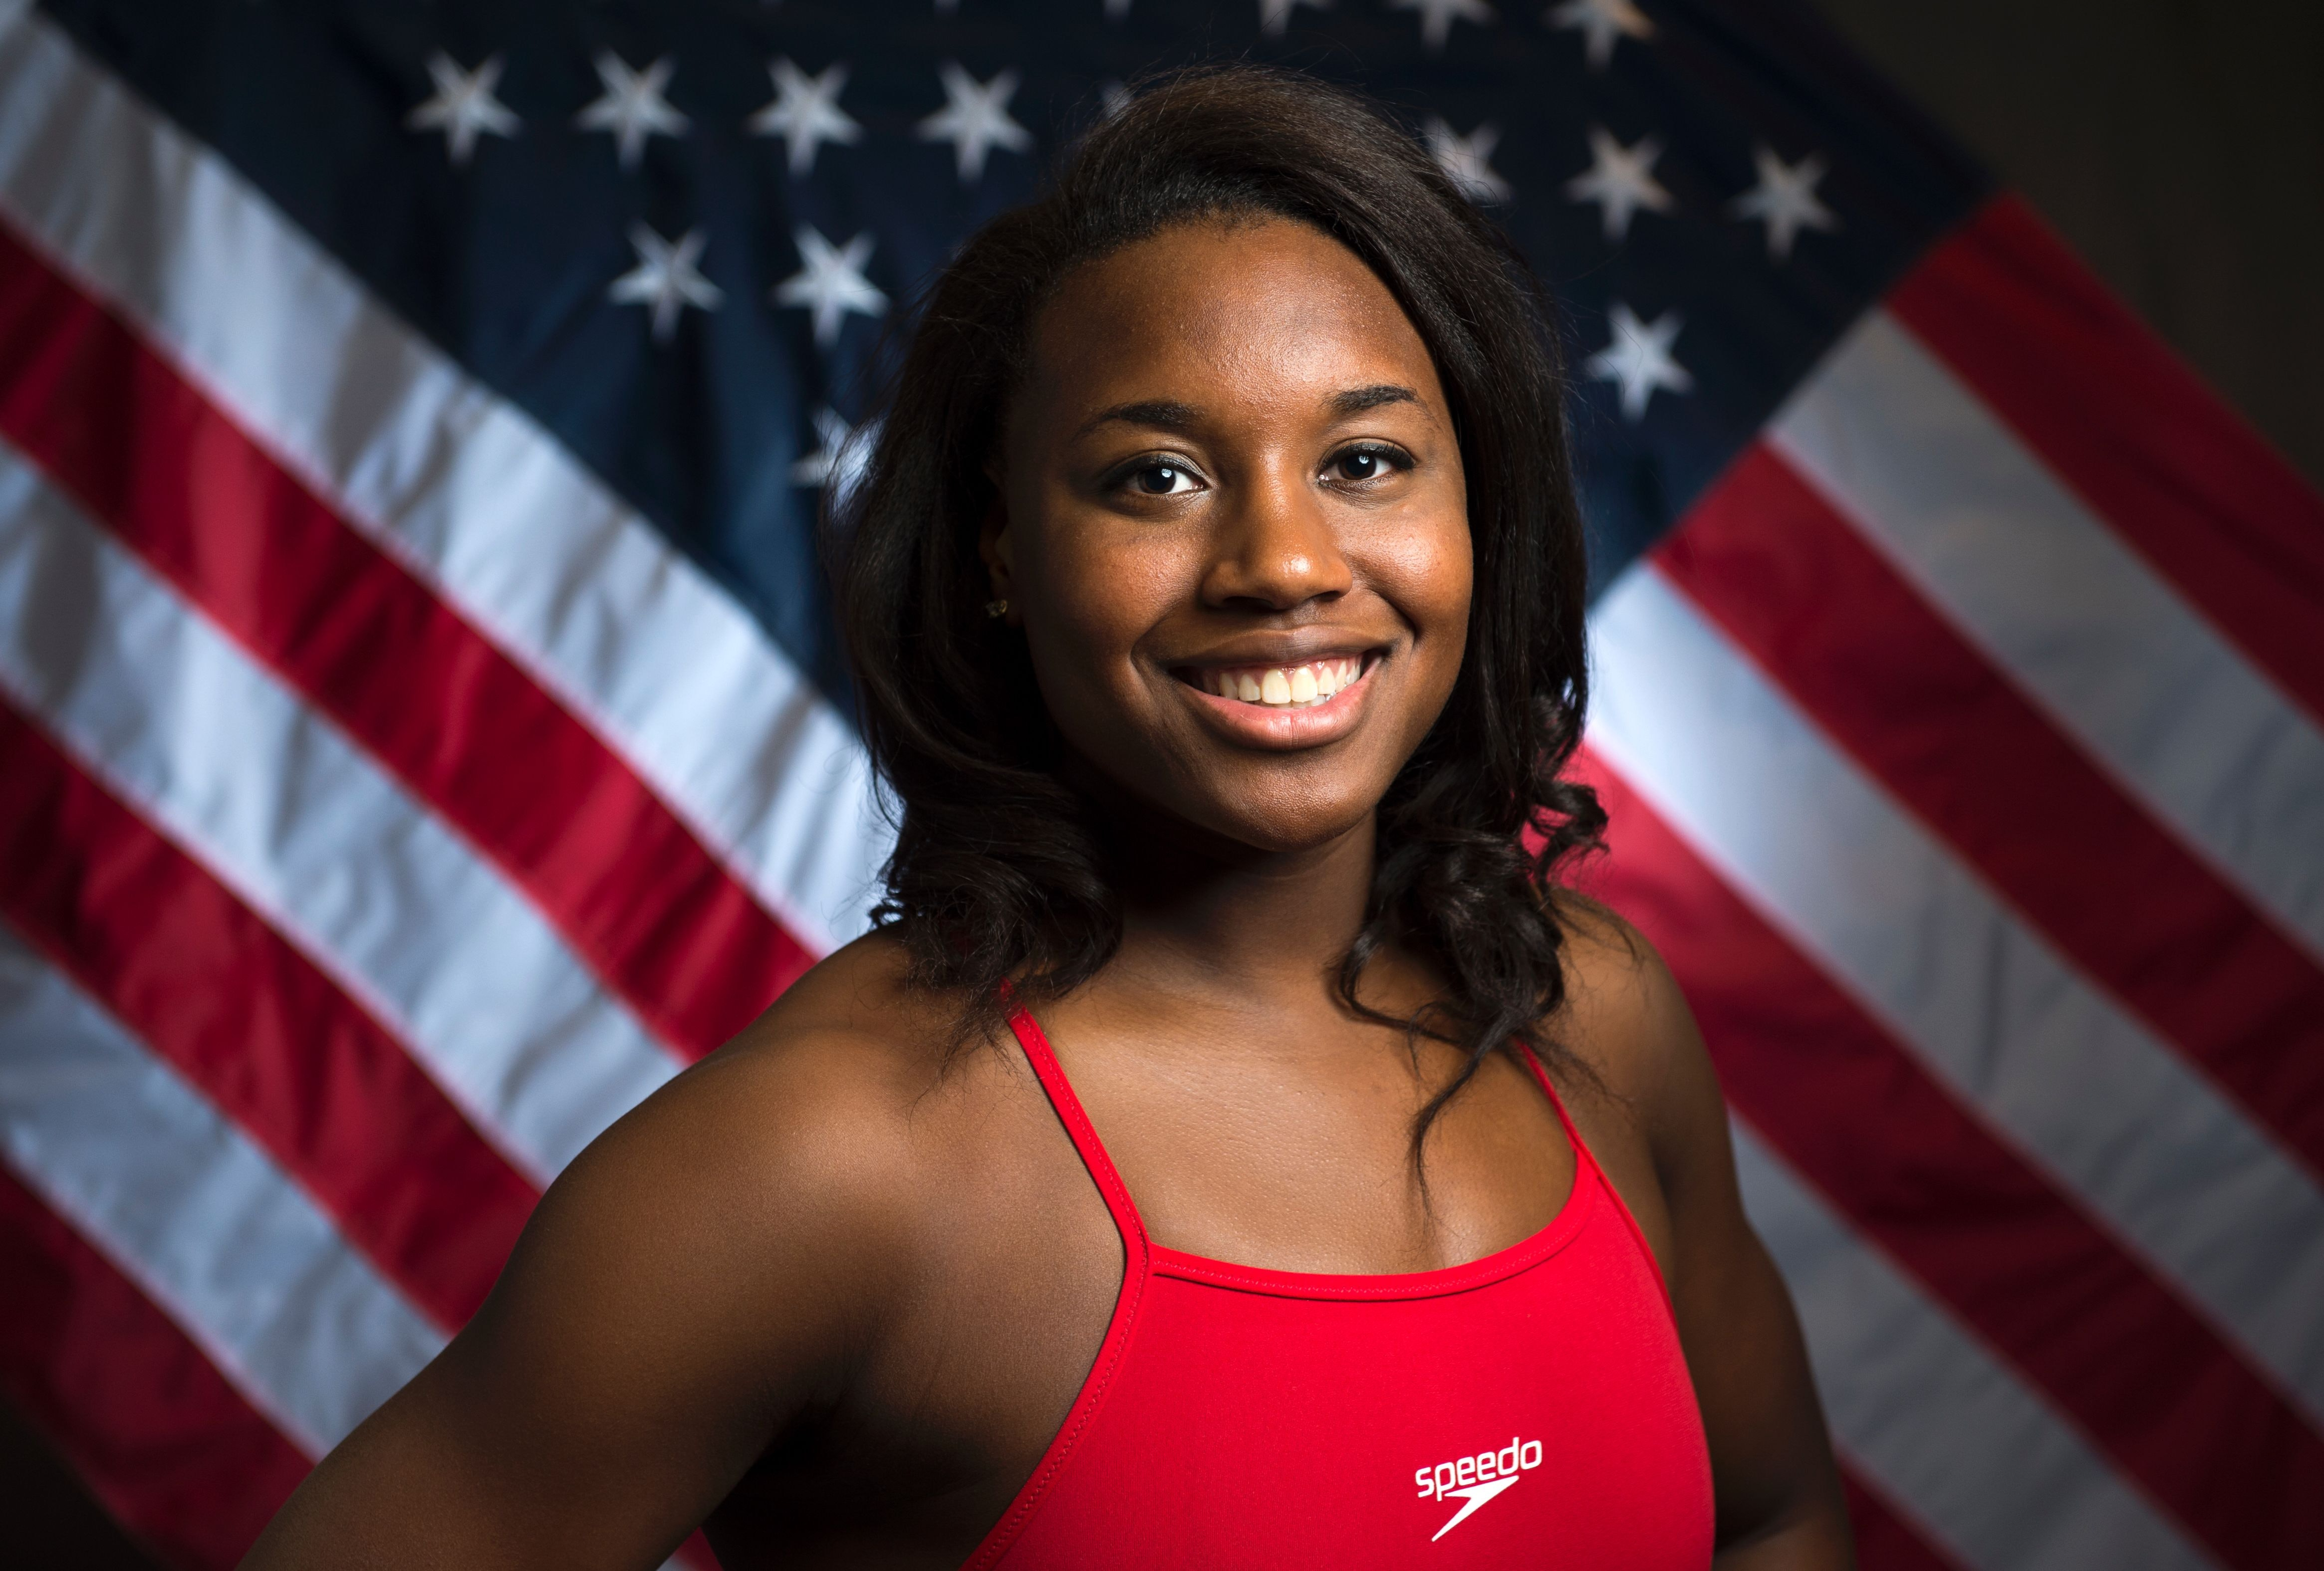 Simone Manuel earned a  million dollar salary - leaving the net worth at 0.1 million in 2018